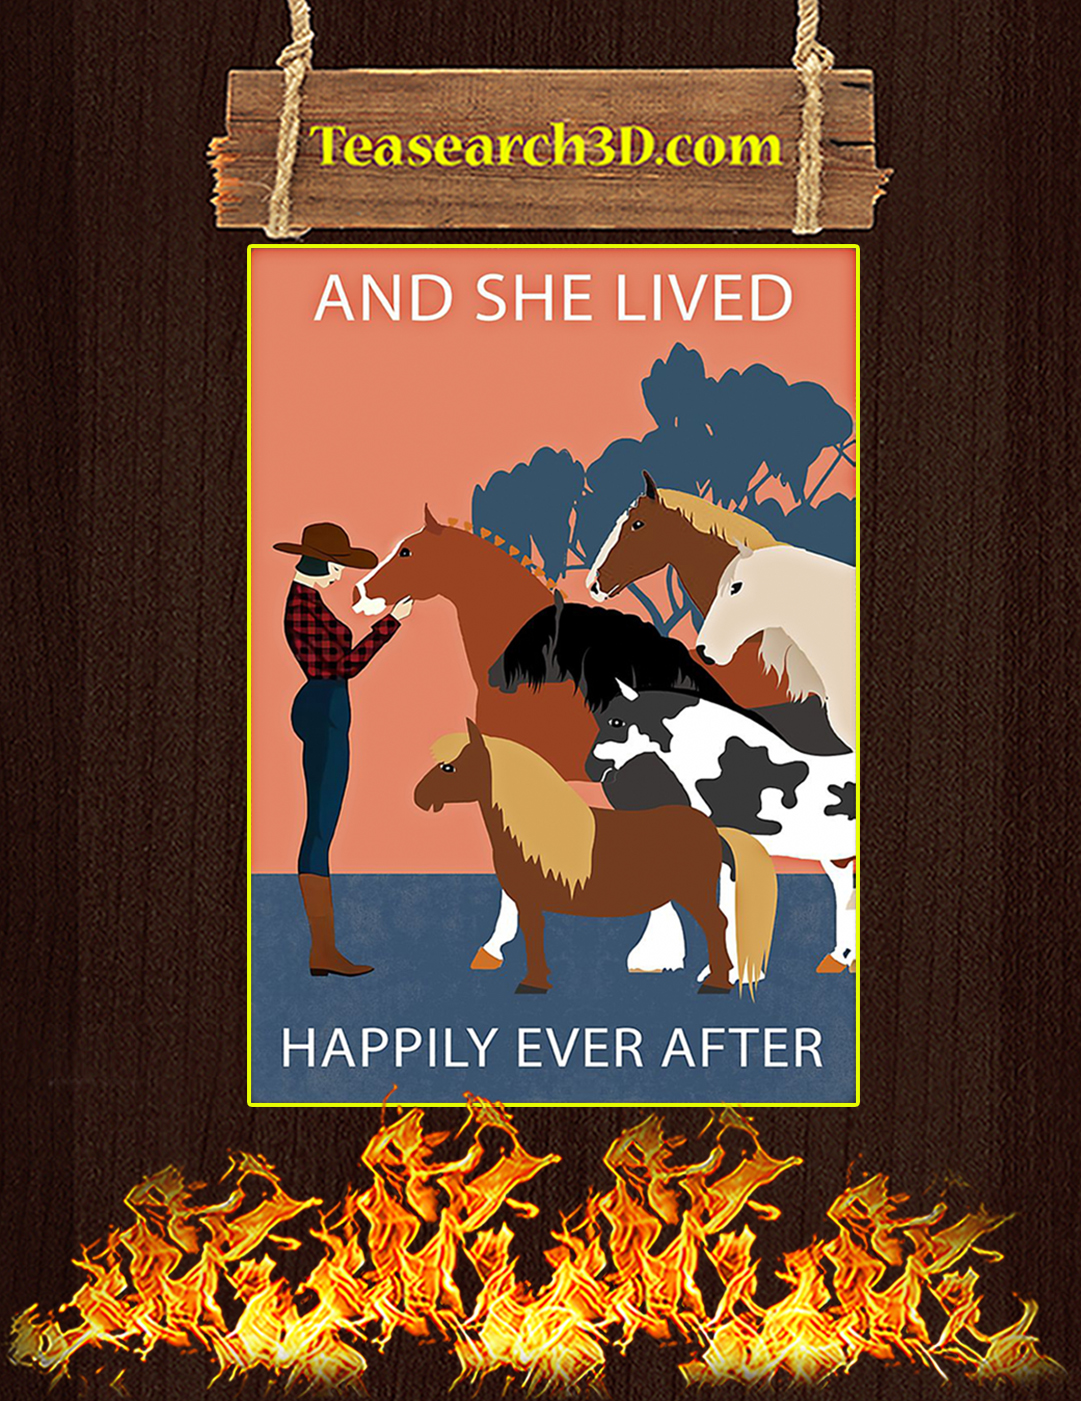 Horse And she lived happily ever after poster A2